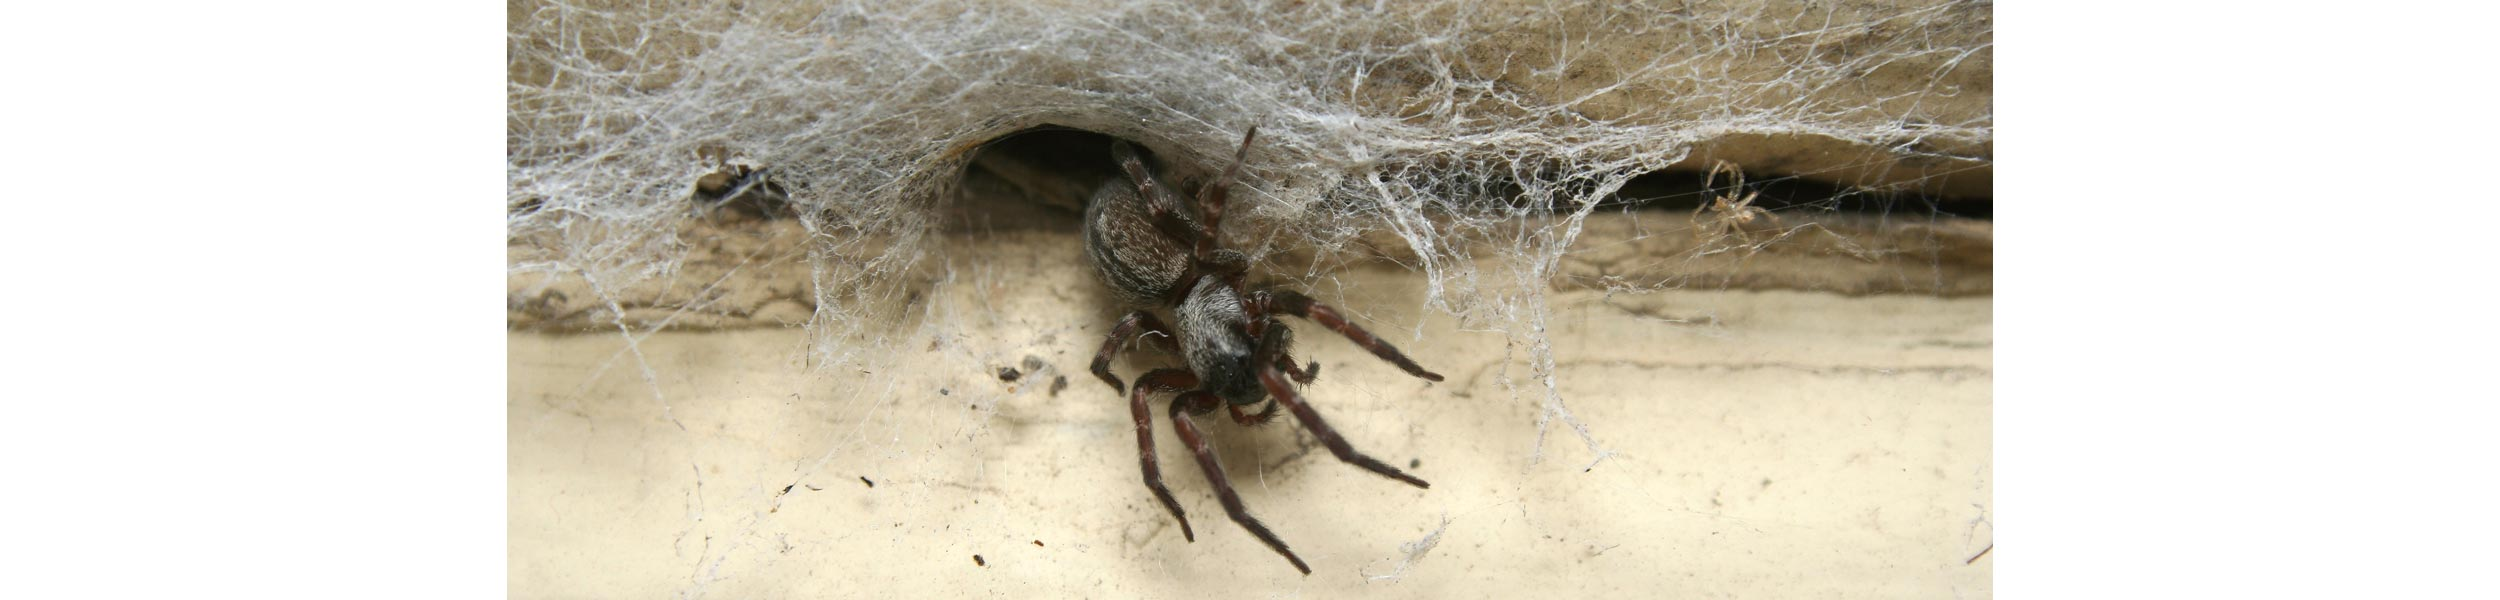 ACE Exterminating-Pest-Services-Spiders-Coming-Out-Of-Hole-Header